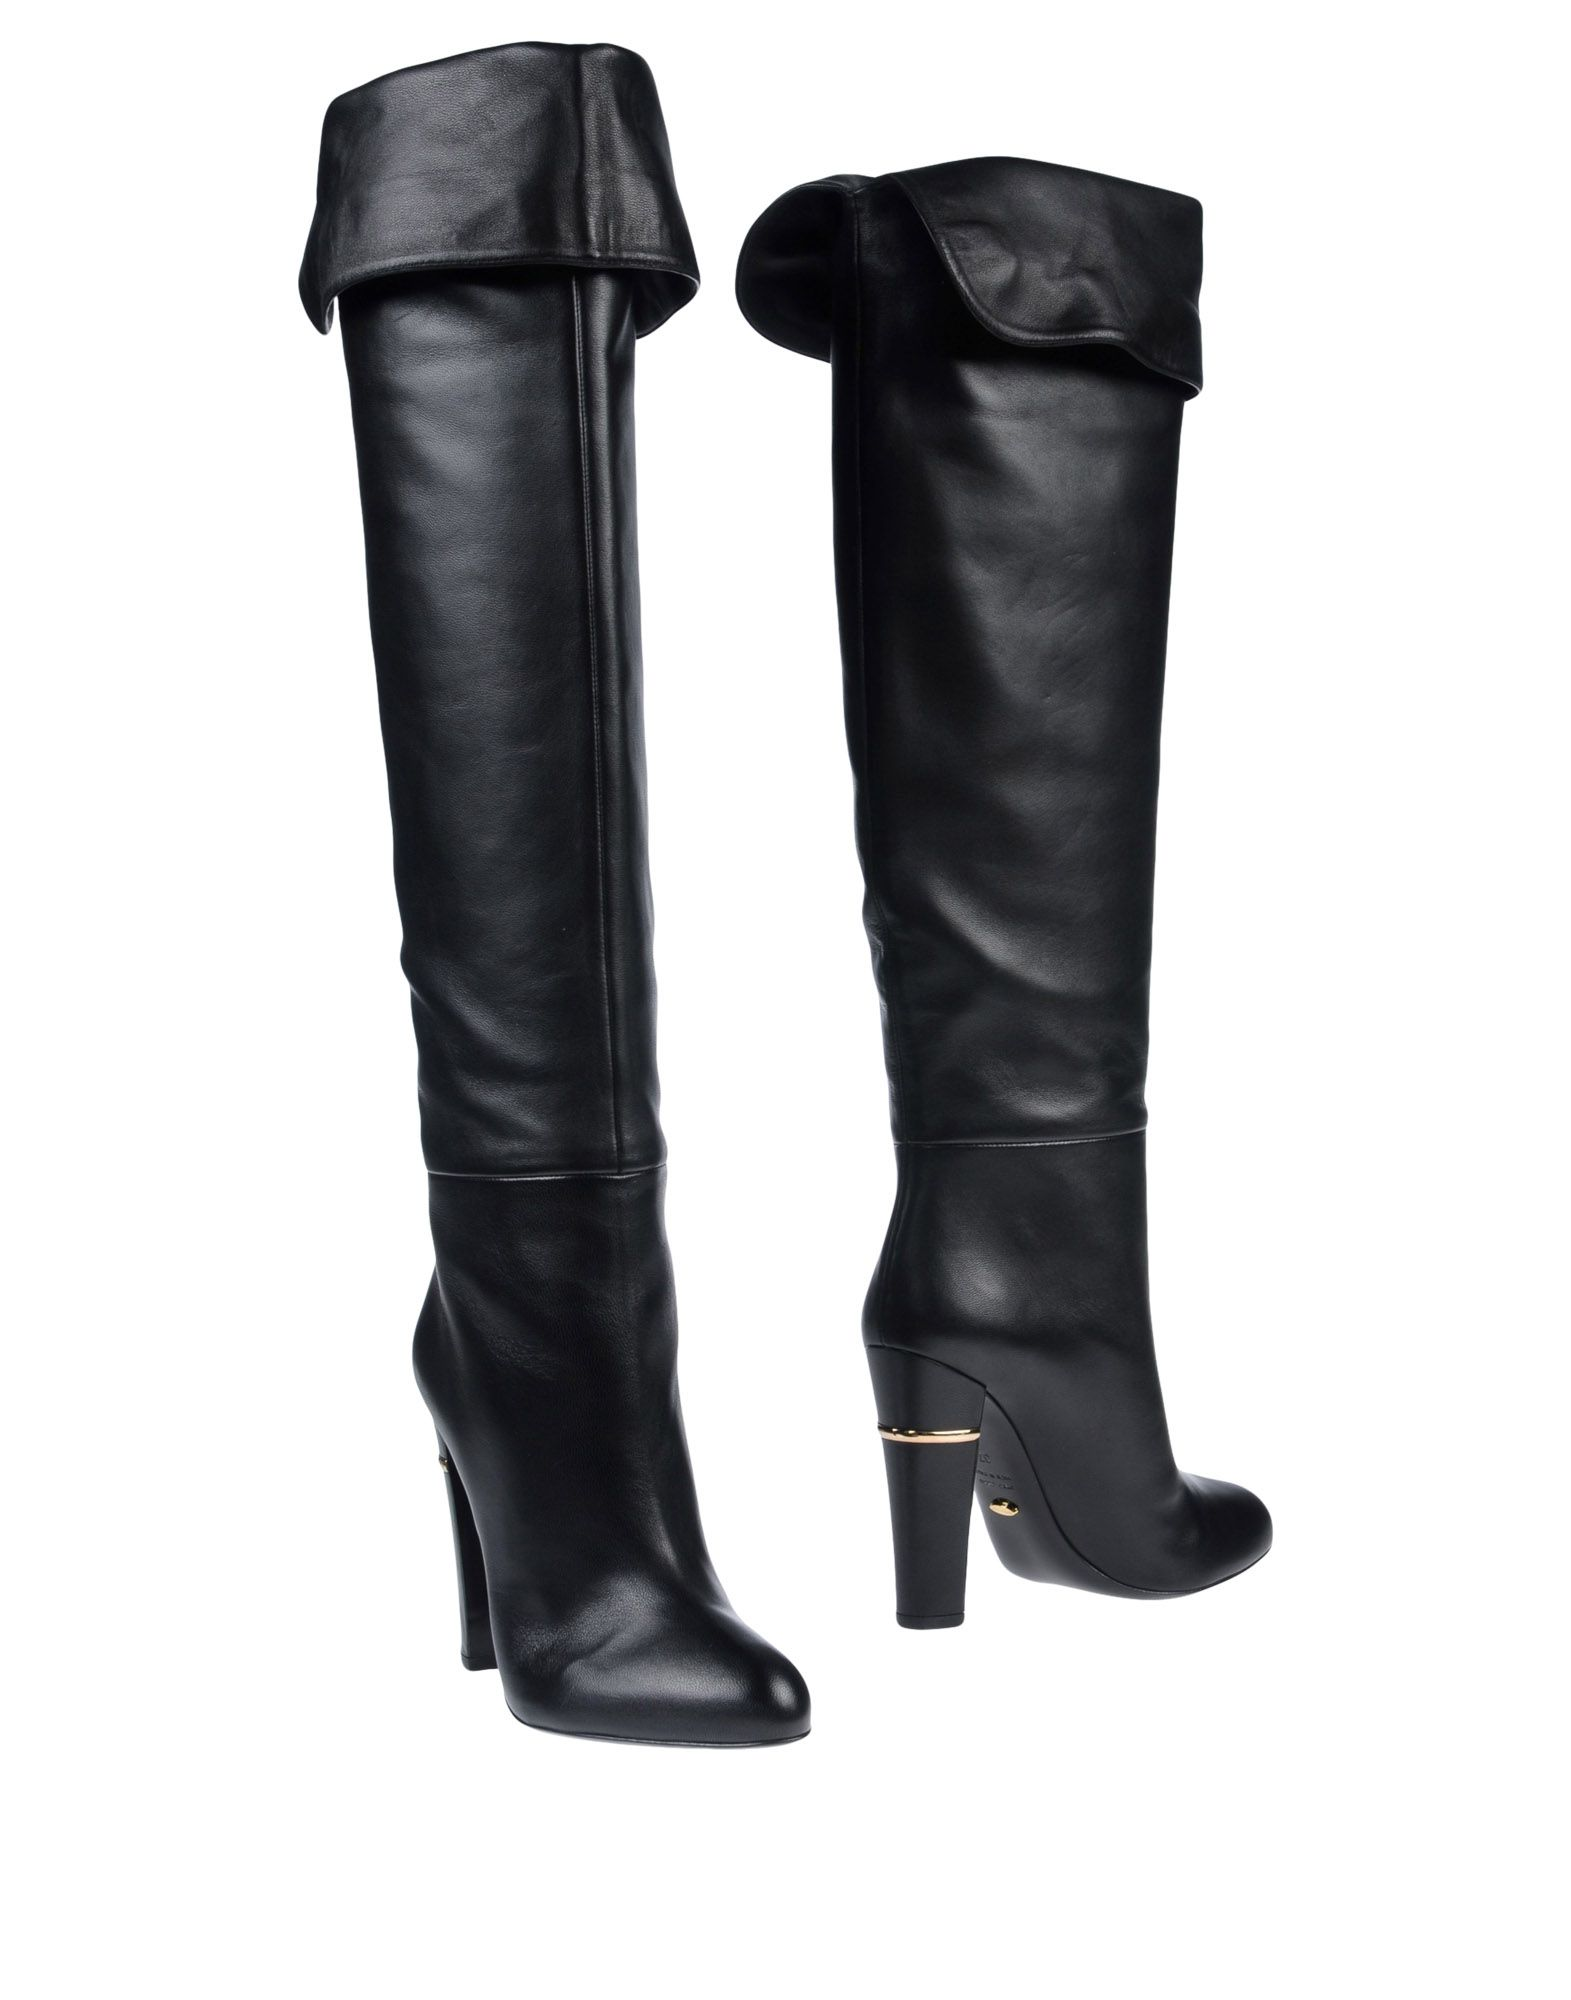 Sergio Rossi Boots Boots - Women Sergio Rossi Boots Boots online on  United Kingdom - 11413393RW 8aa259